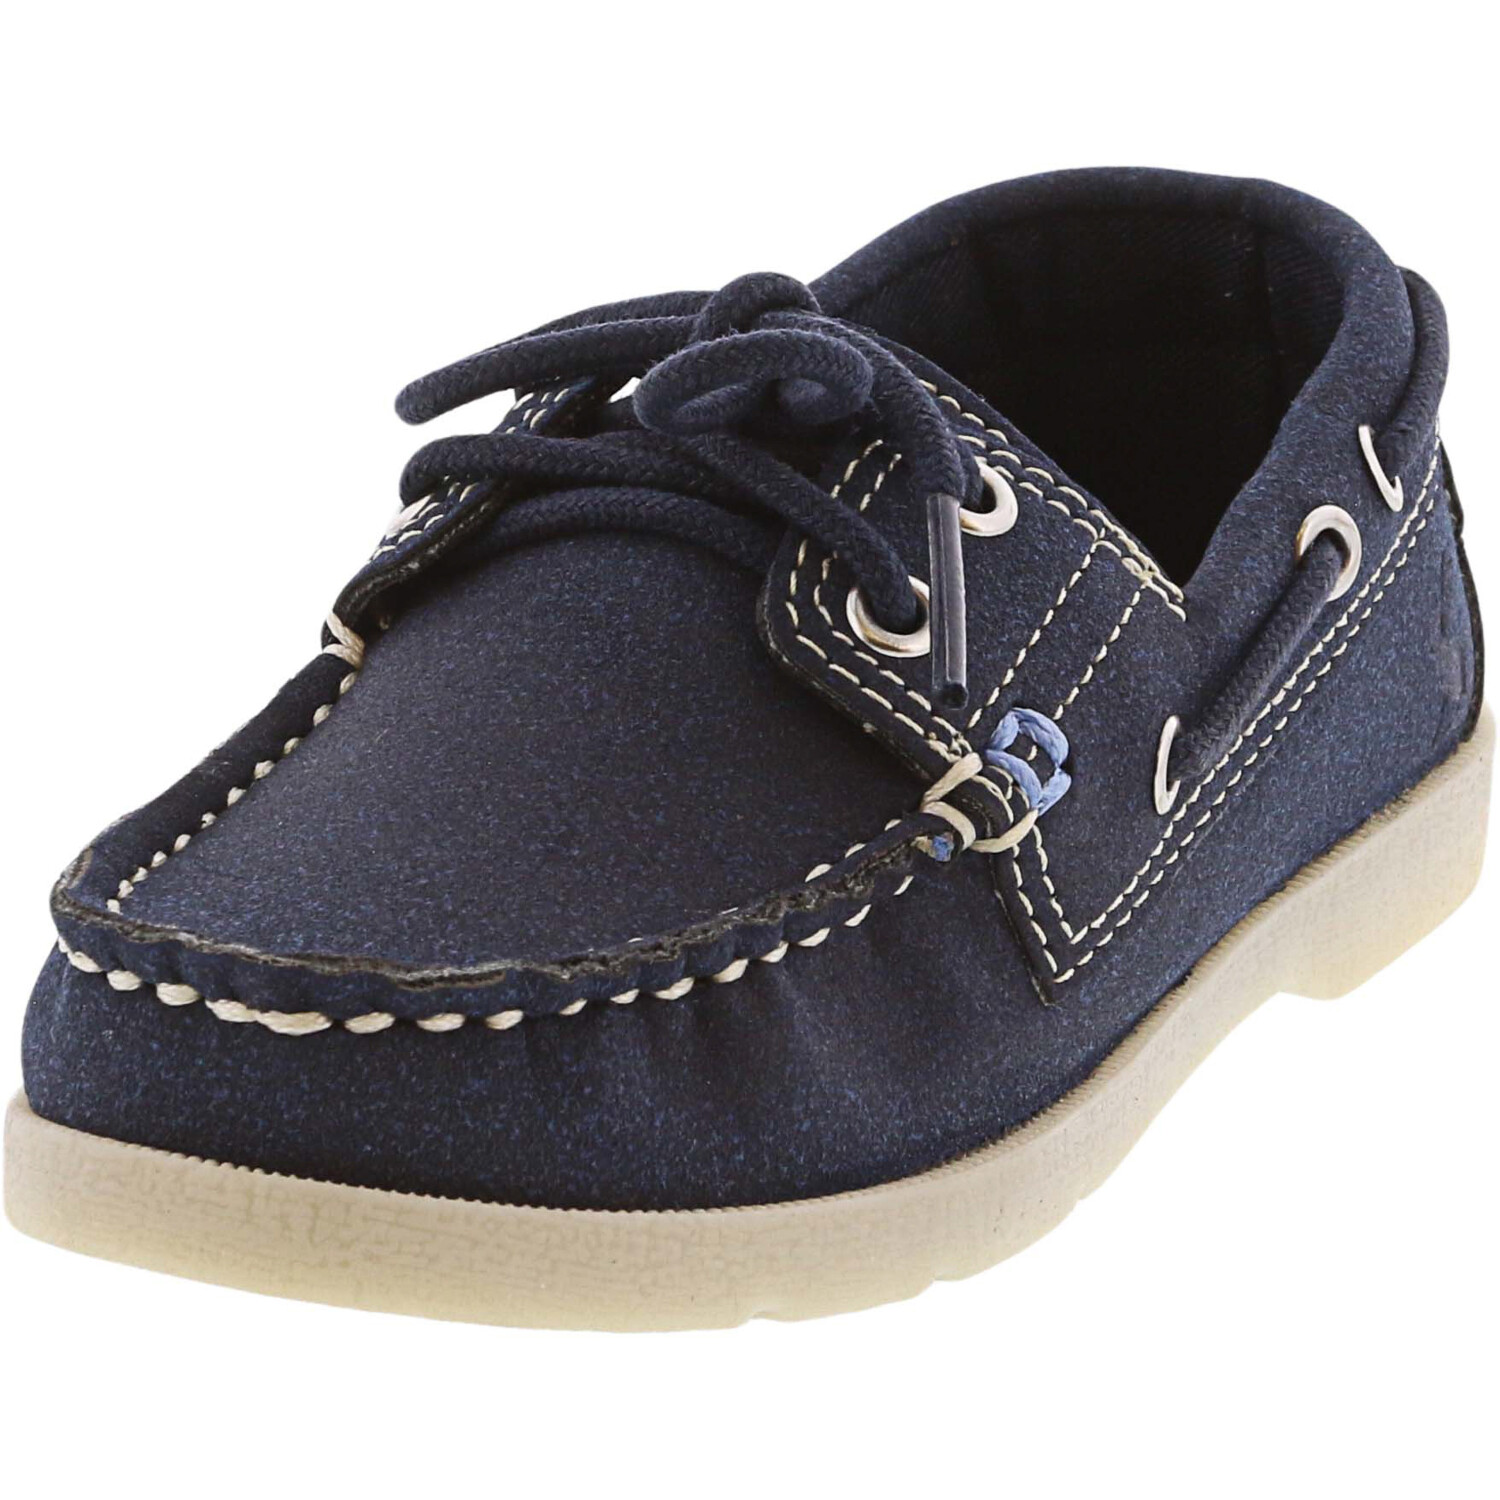 Joules Boy's Junior Swinton French Navy Ankle-High Fabric Boating - 9M